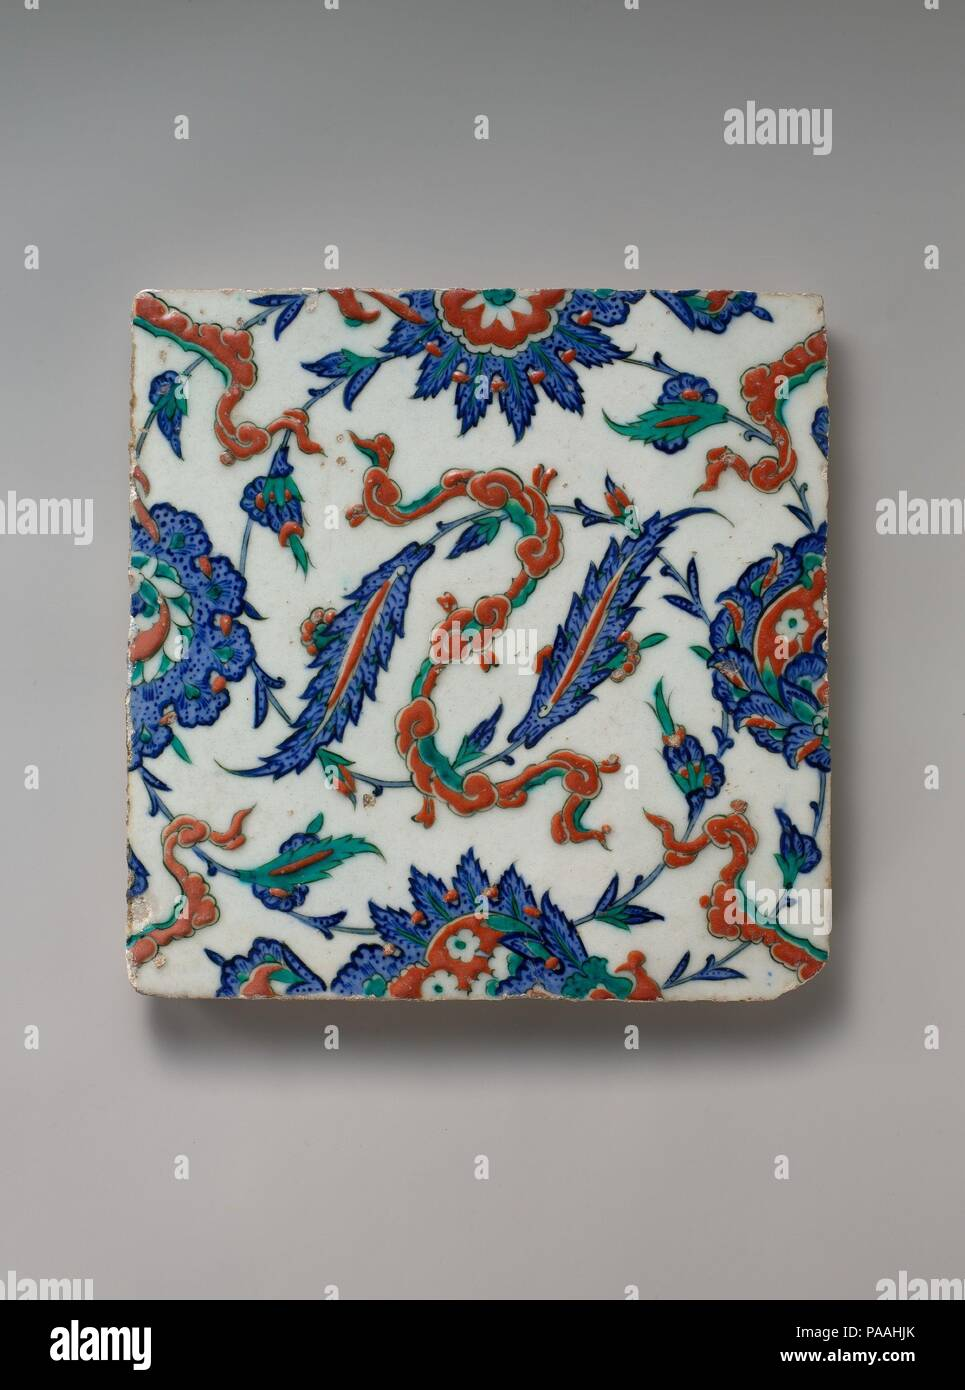 9 To Cm Tile With Floral And Cloud Band Design Dimensions H 9 13 16 In